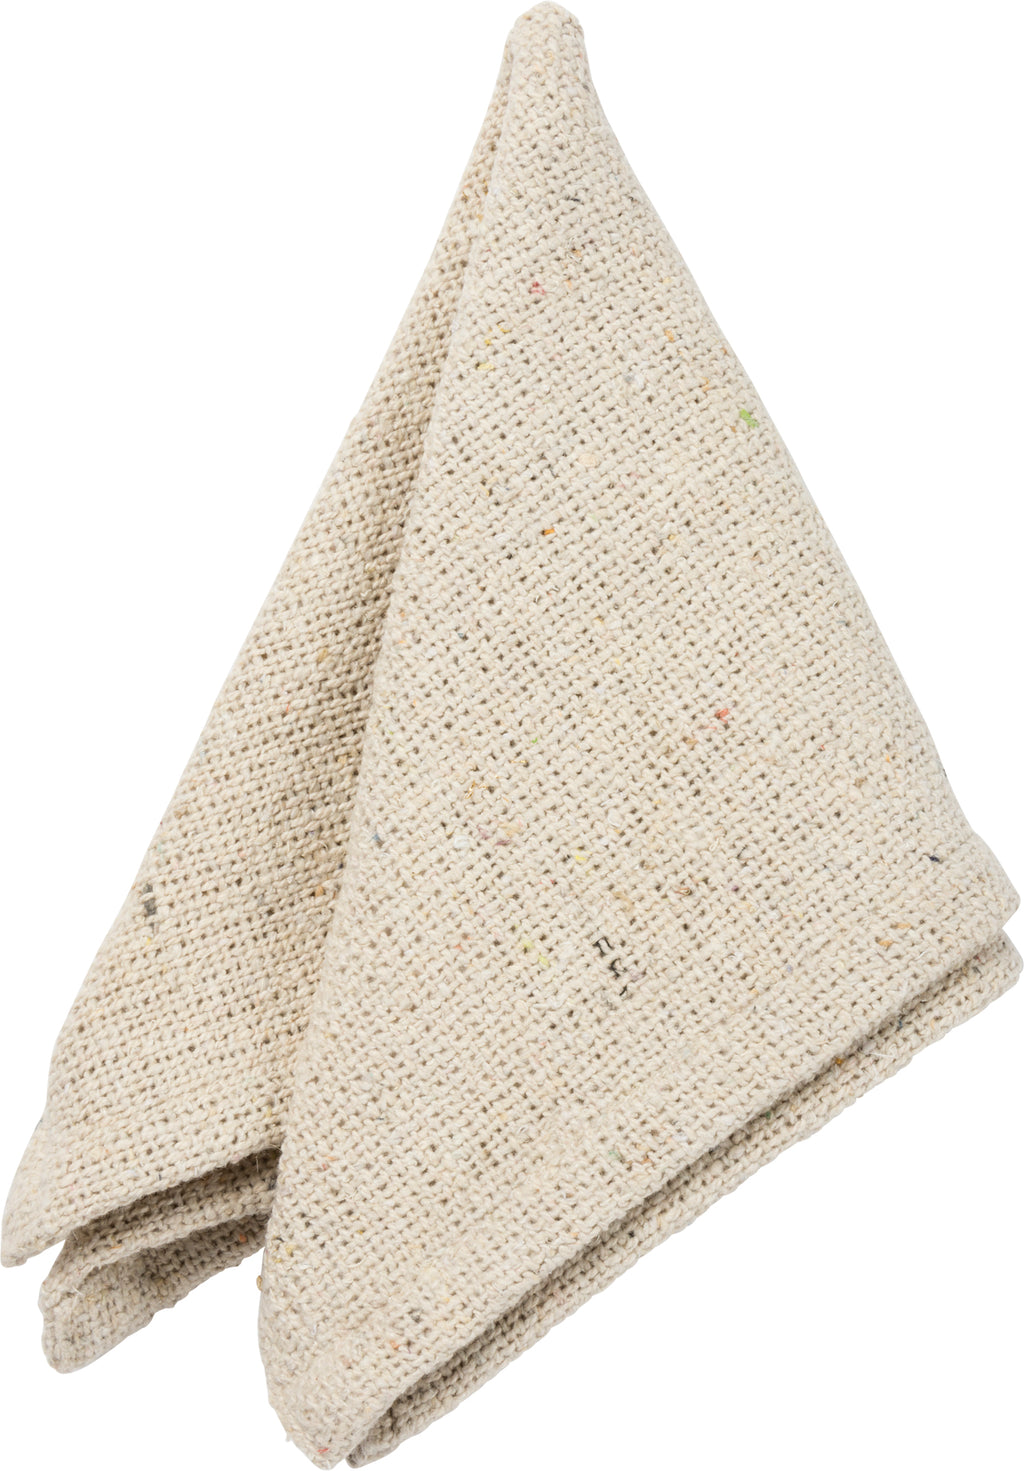 Farmhouse Burlap Napkin